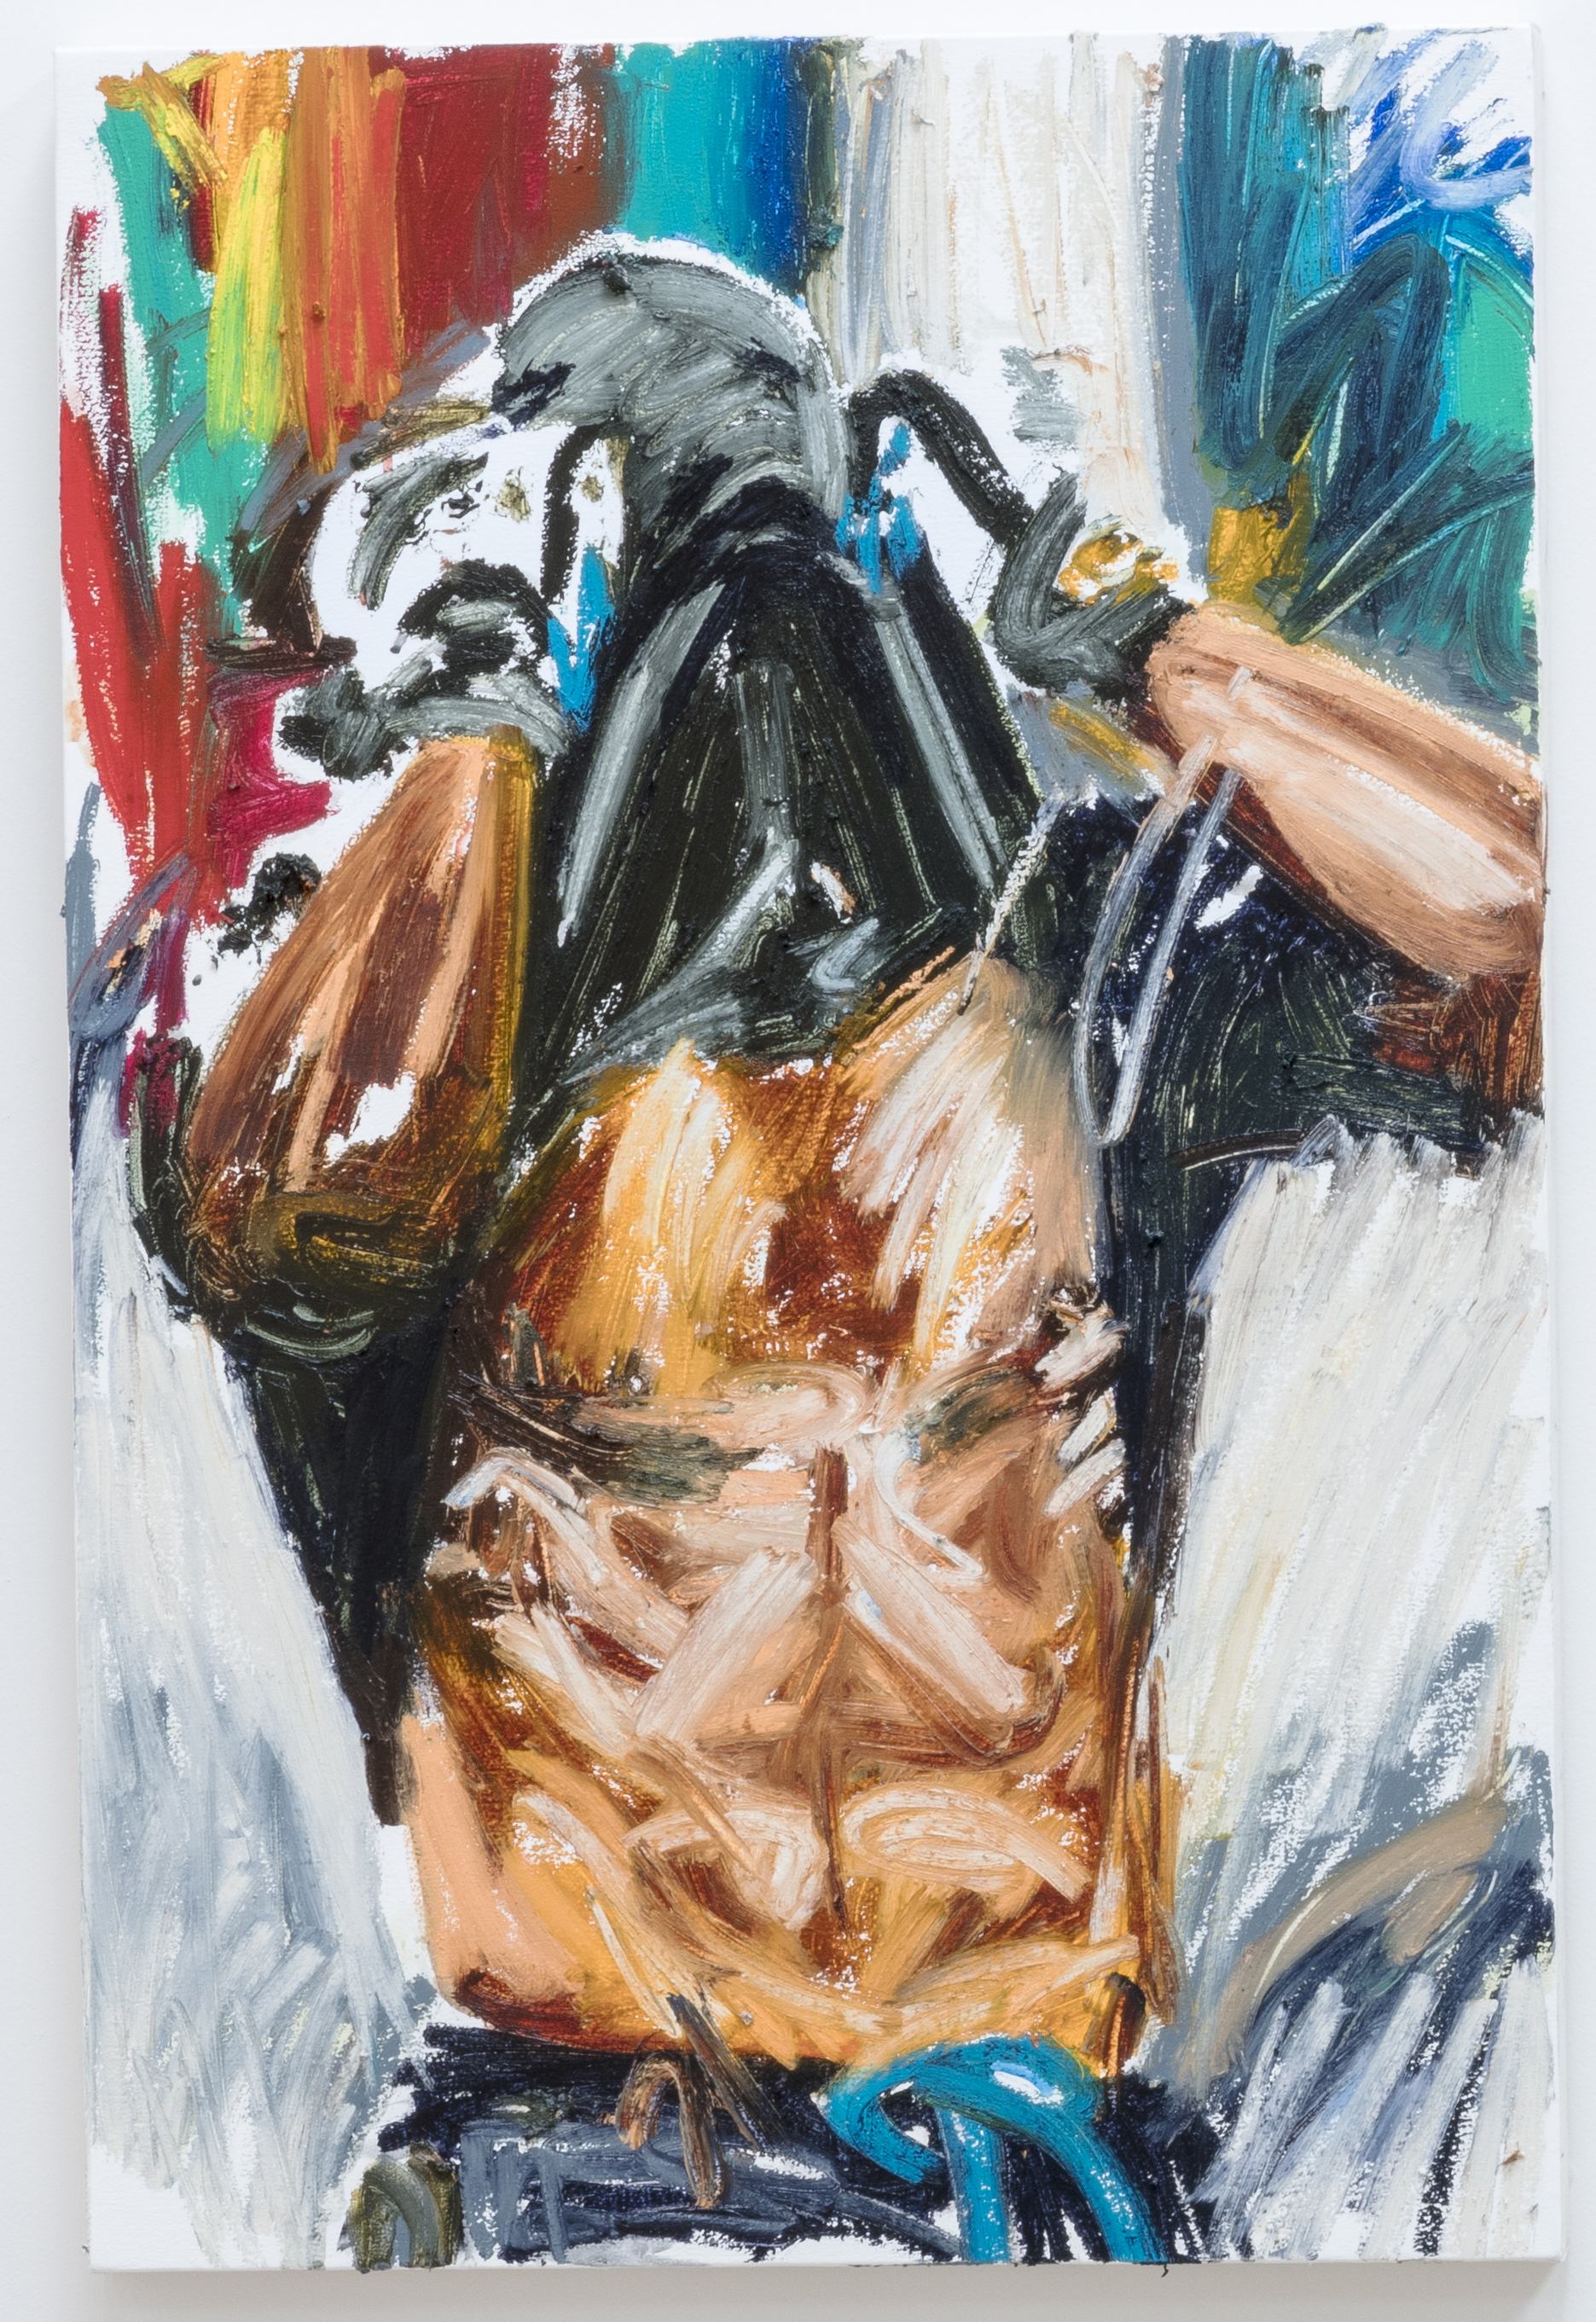 Conrad Ruíz. <em>Phantom 5</em>, 2018. Oil stick on canvas, 36 x 24 inches  (91.4 x 61 cm)